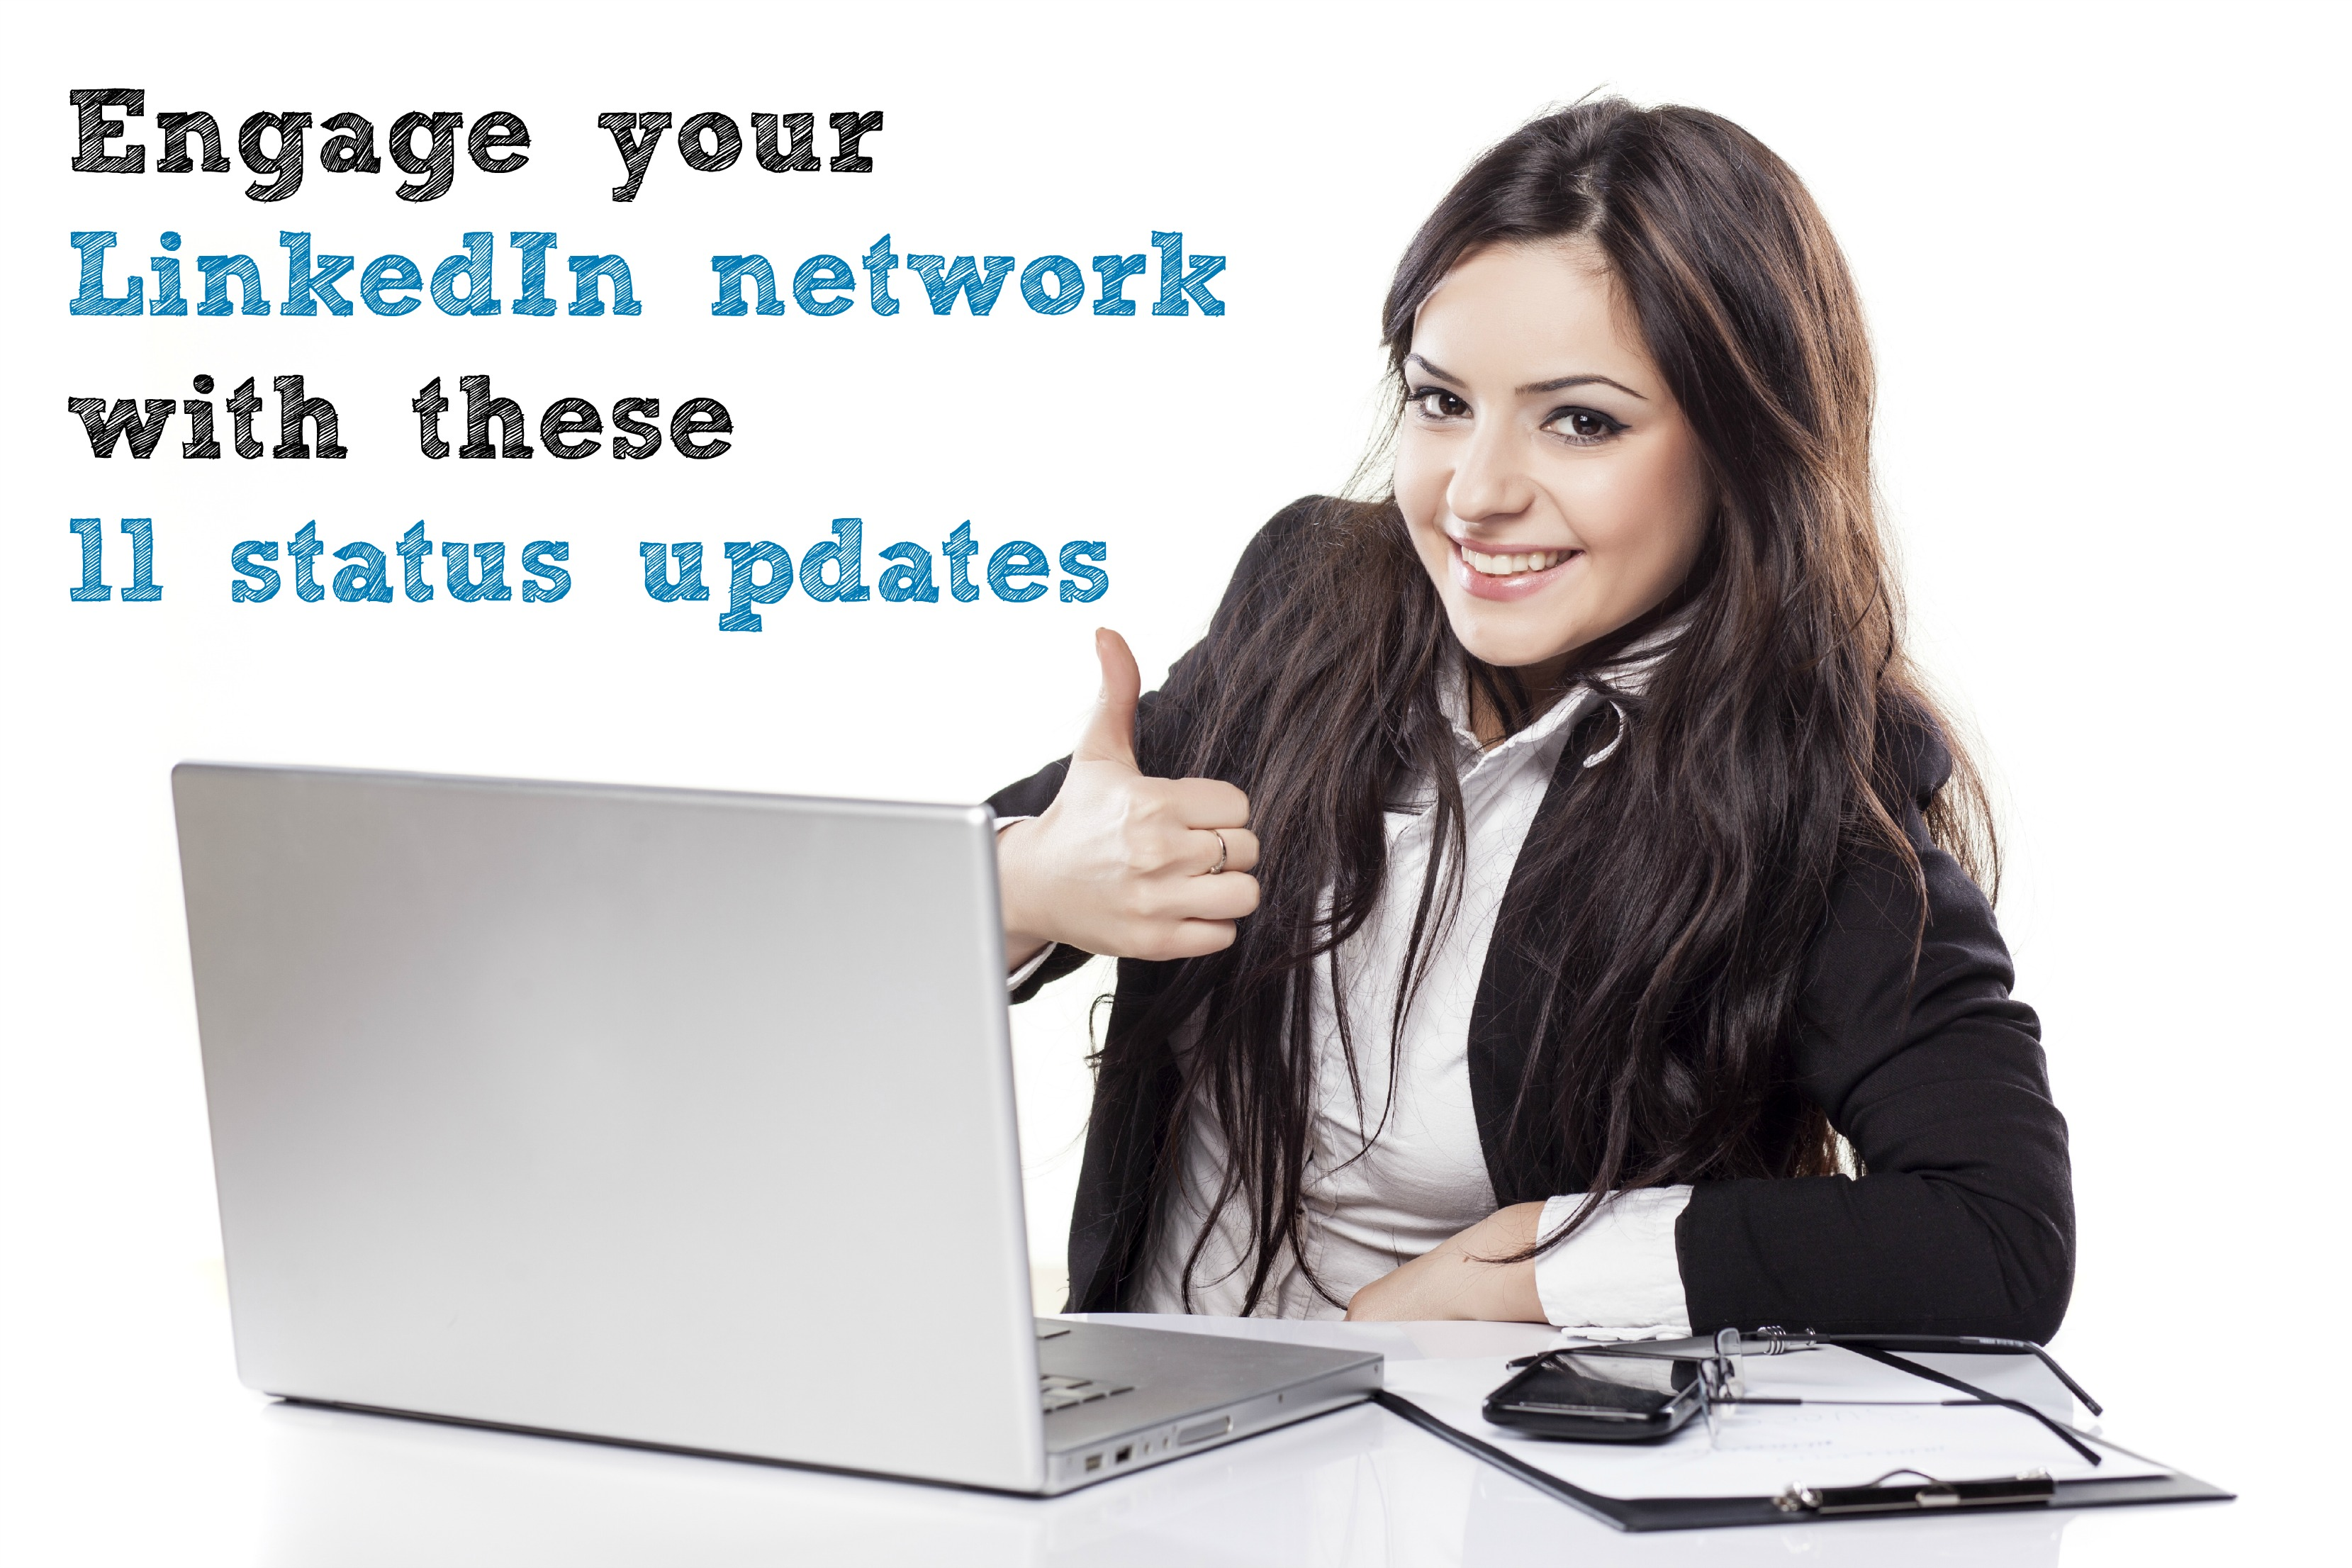 Engage your network with these 11 LinkedIn status updates